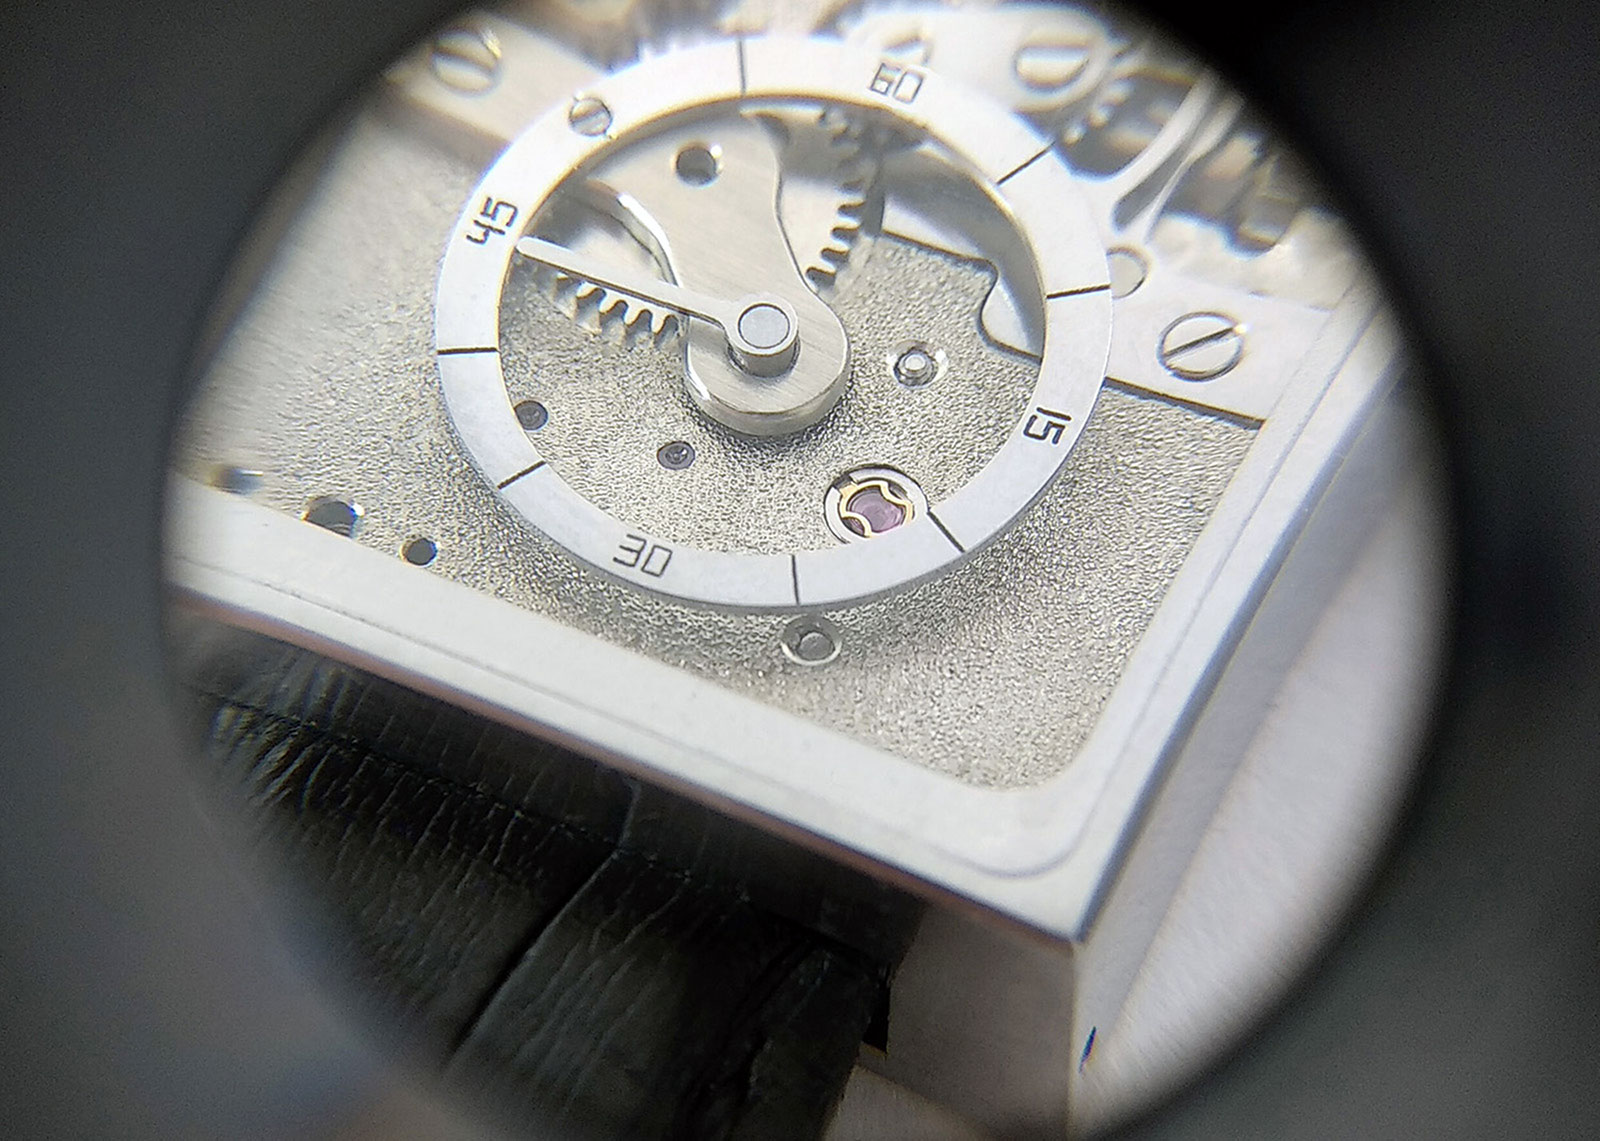 david lowinger series 2 regulator watch 5